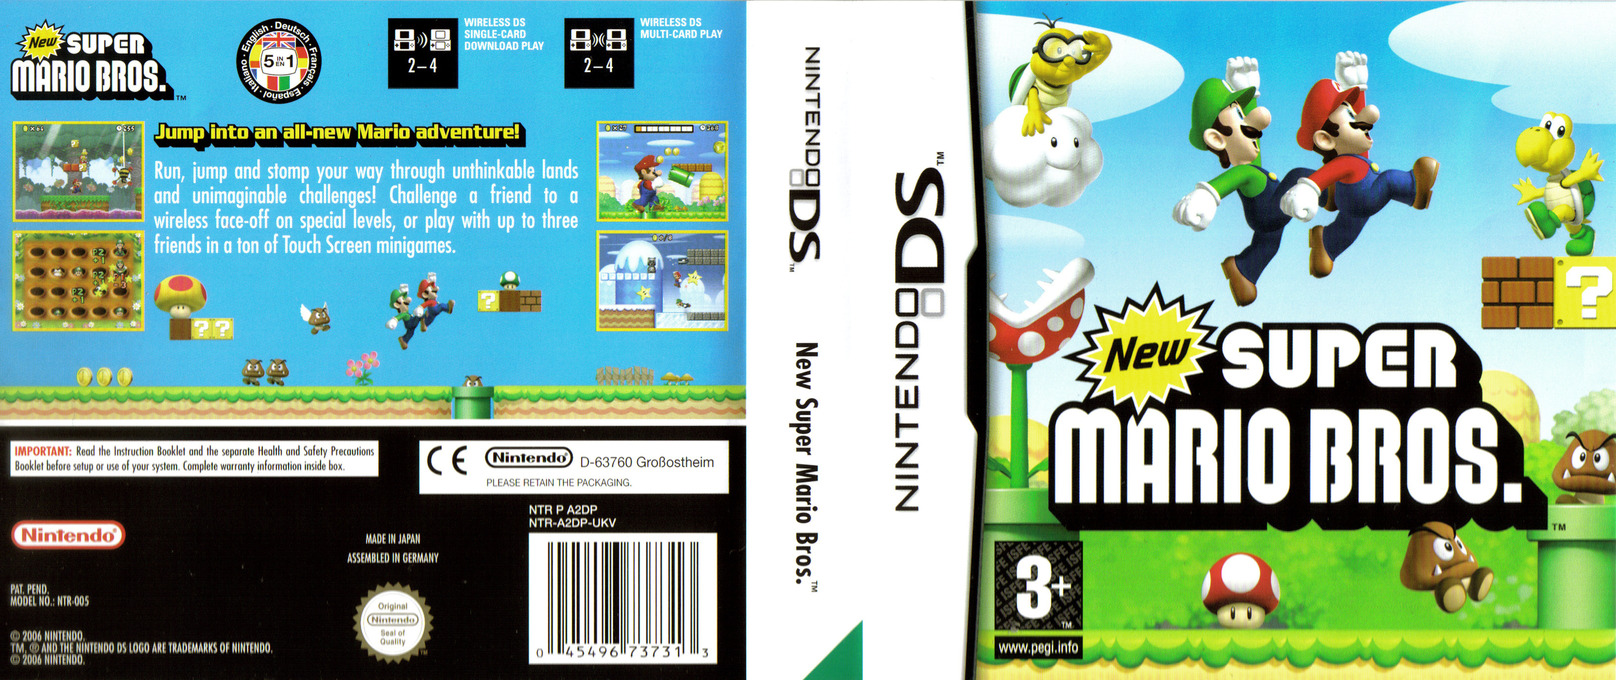 A2dp New Super Mario Bros